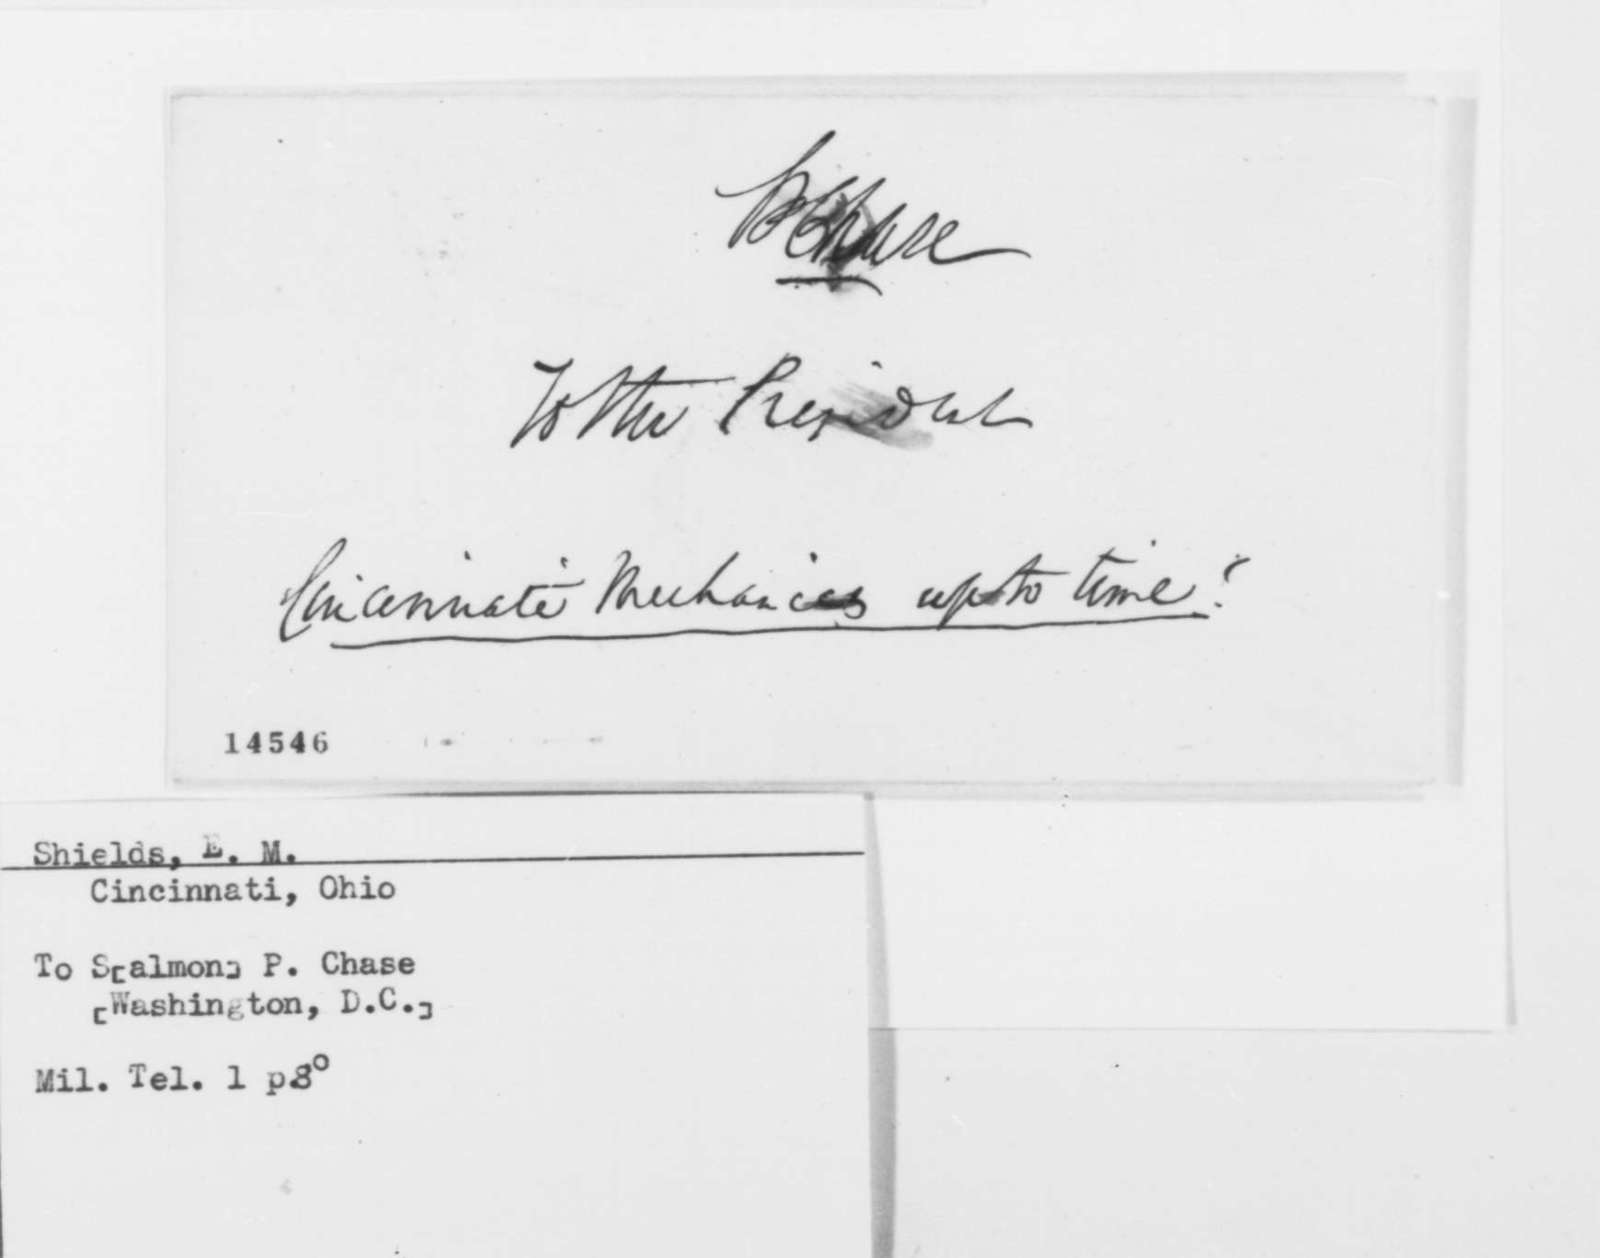 E. M. Shields to Salmon P. Chase, Saturday, February 15, 1862  (Telegram)